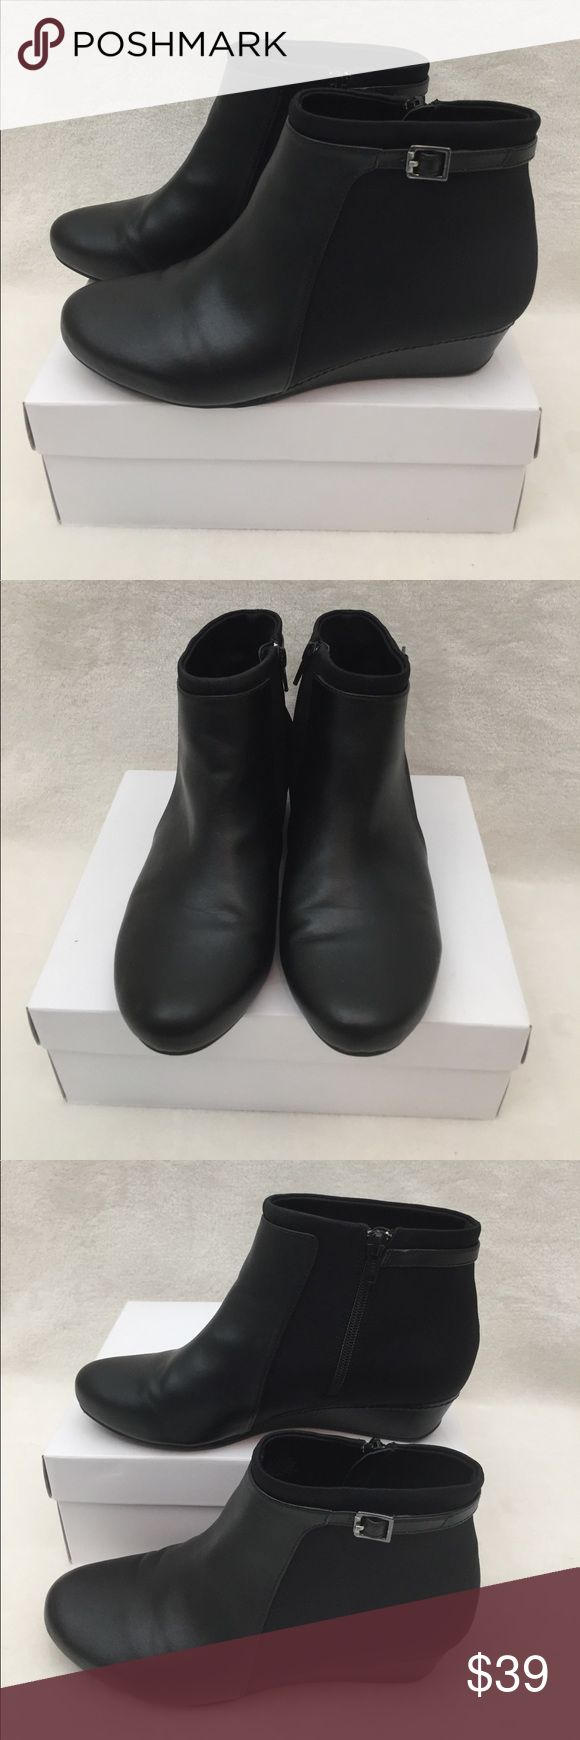 💚Easy Spirit💚 Black woman booties Wore few times! Still in the perfect condition. Very comfortable booties. Ask me questions! Easy Spirit Shoes Ankle Boots & Booties